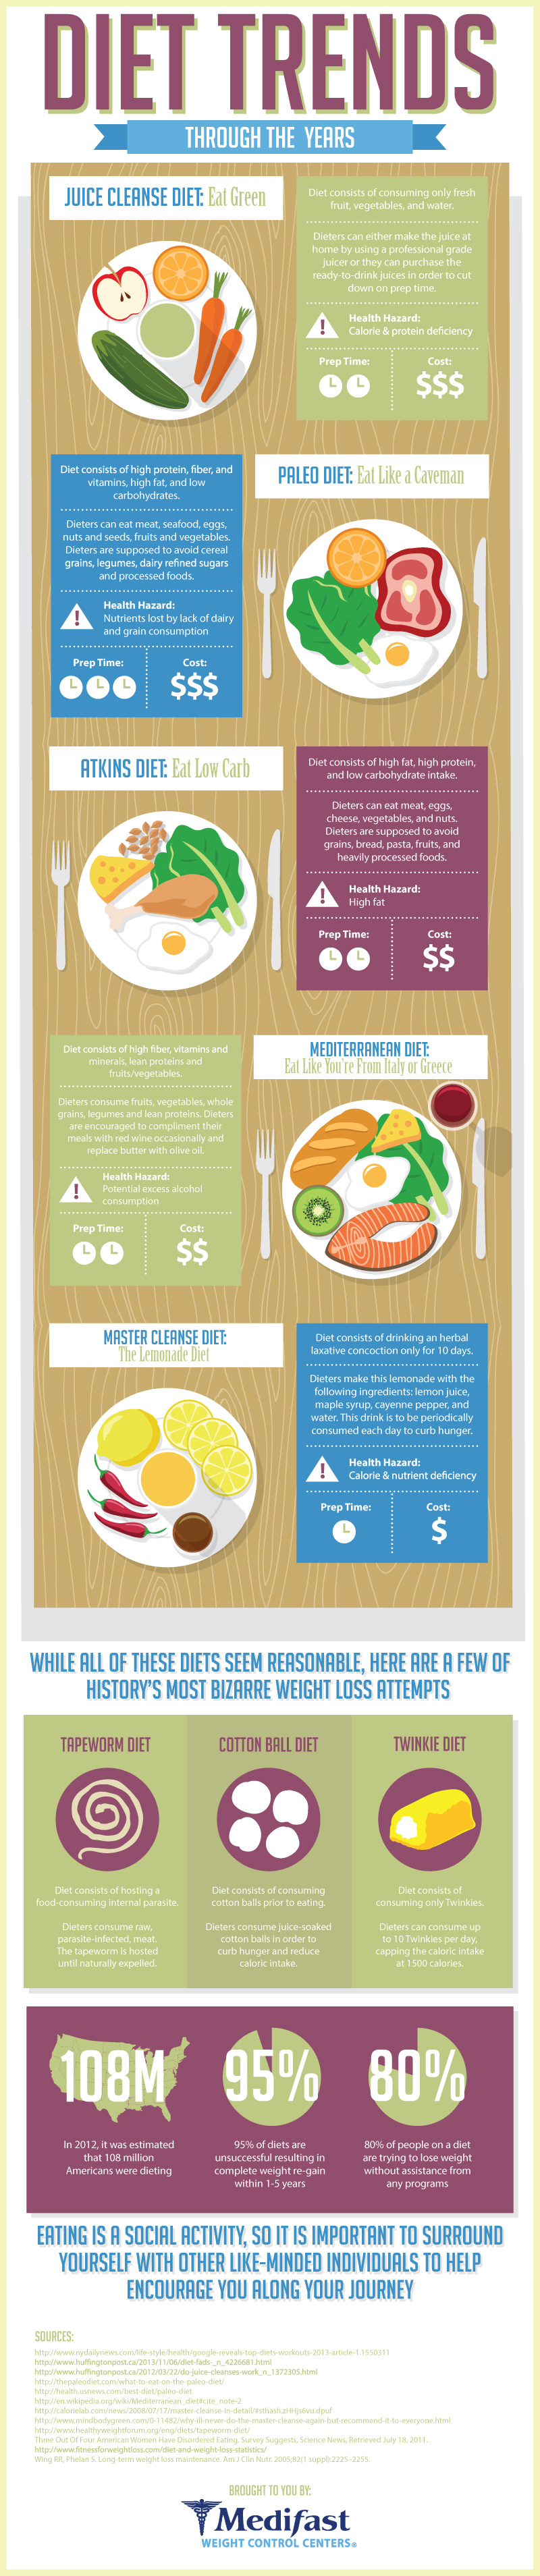 new years diet trends